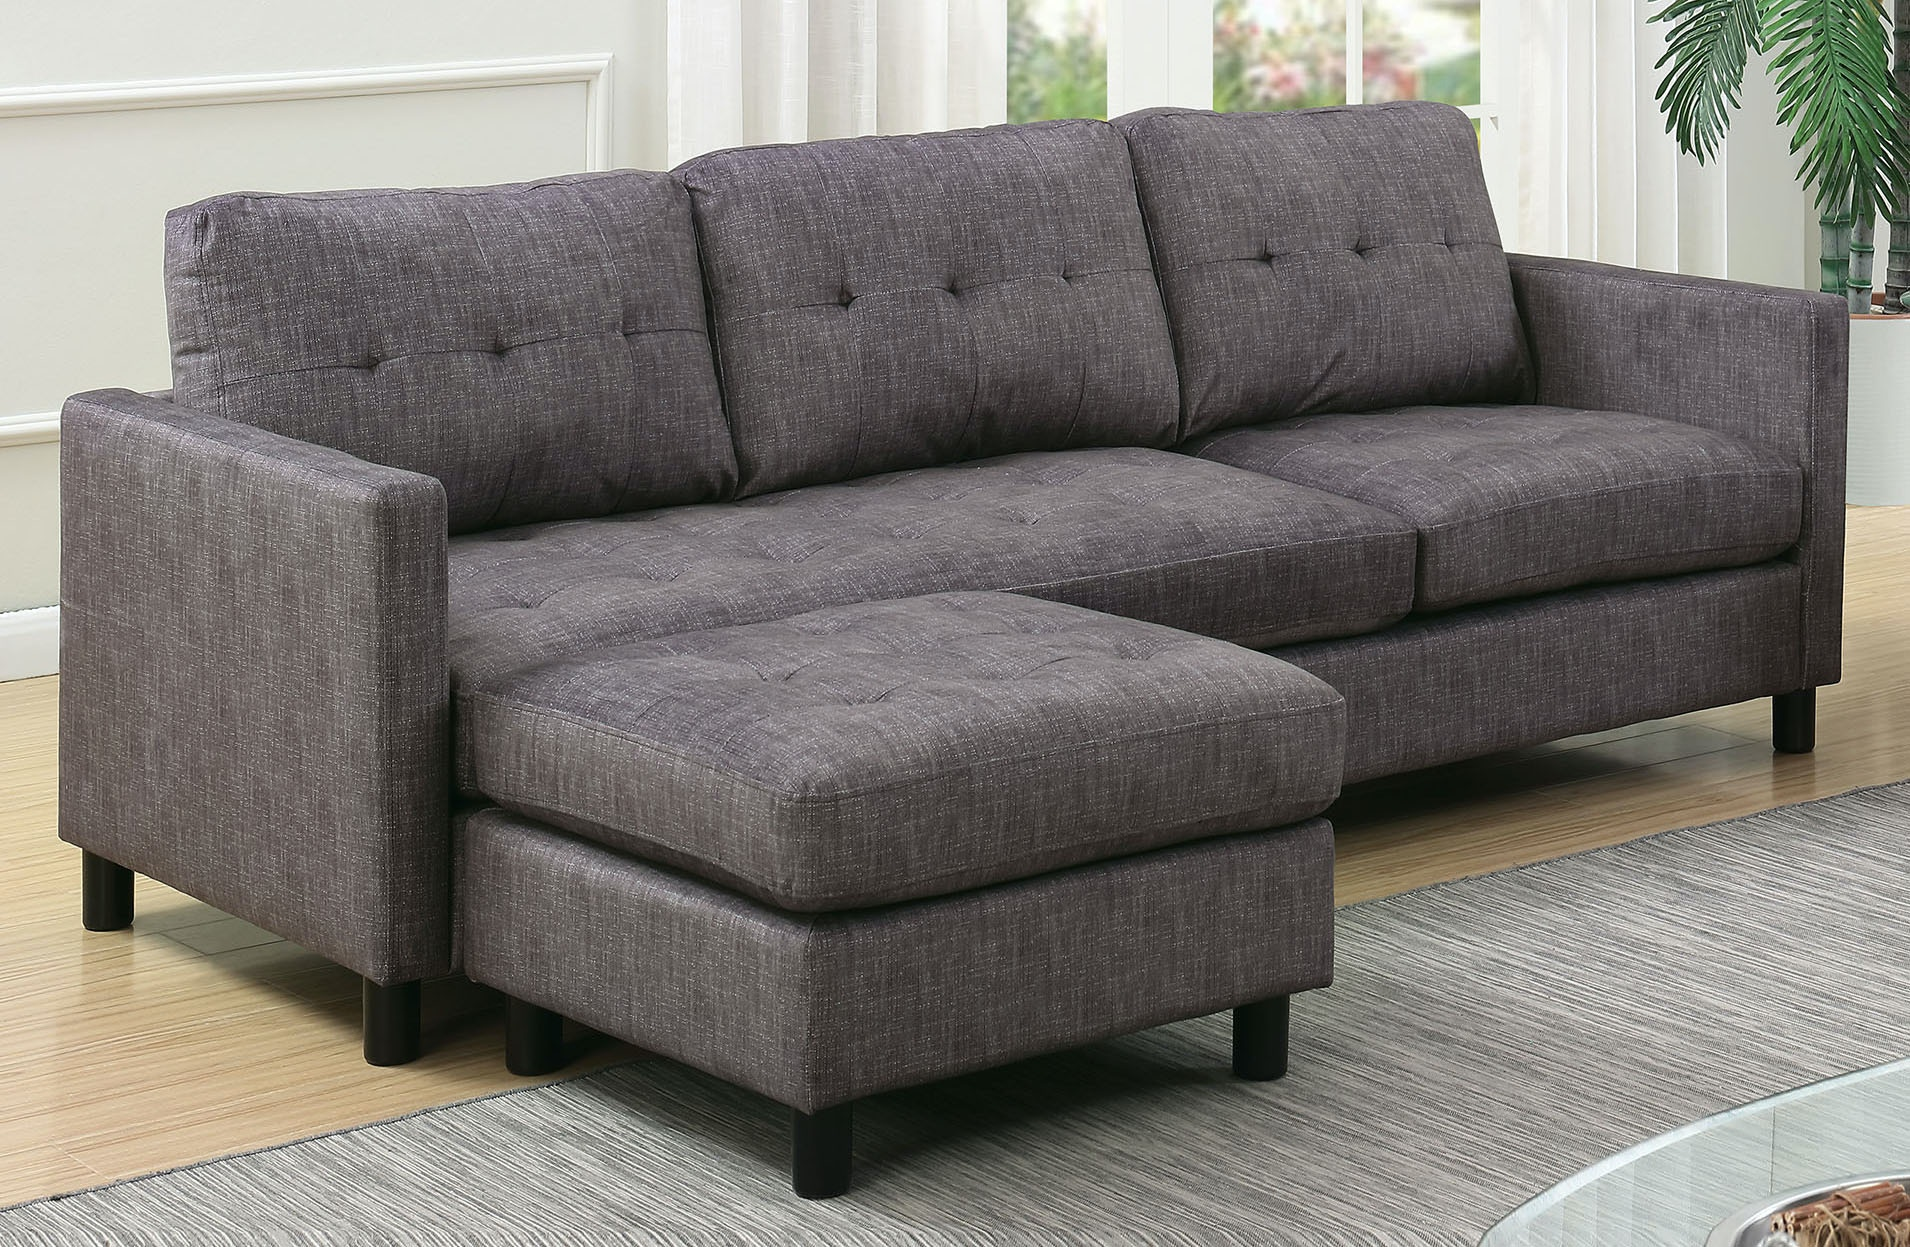 Acme Furniture Ceasar Sofa And Chair Set 53315